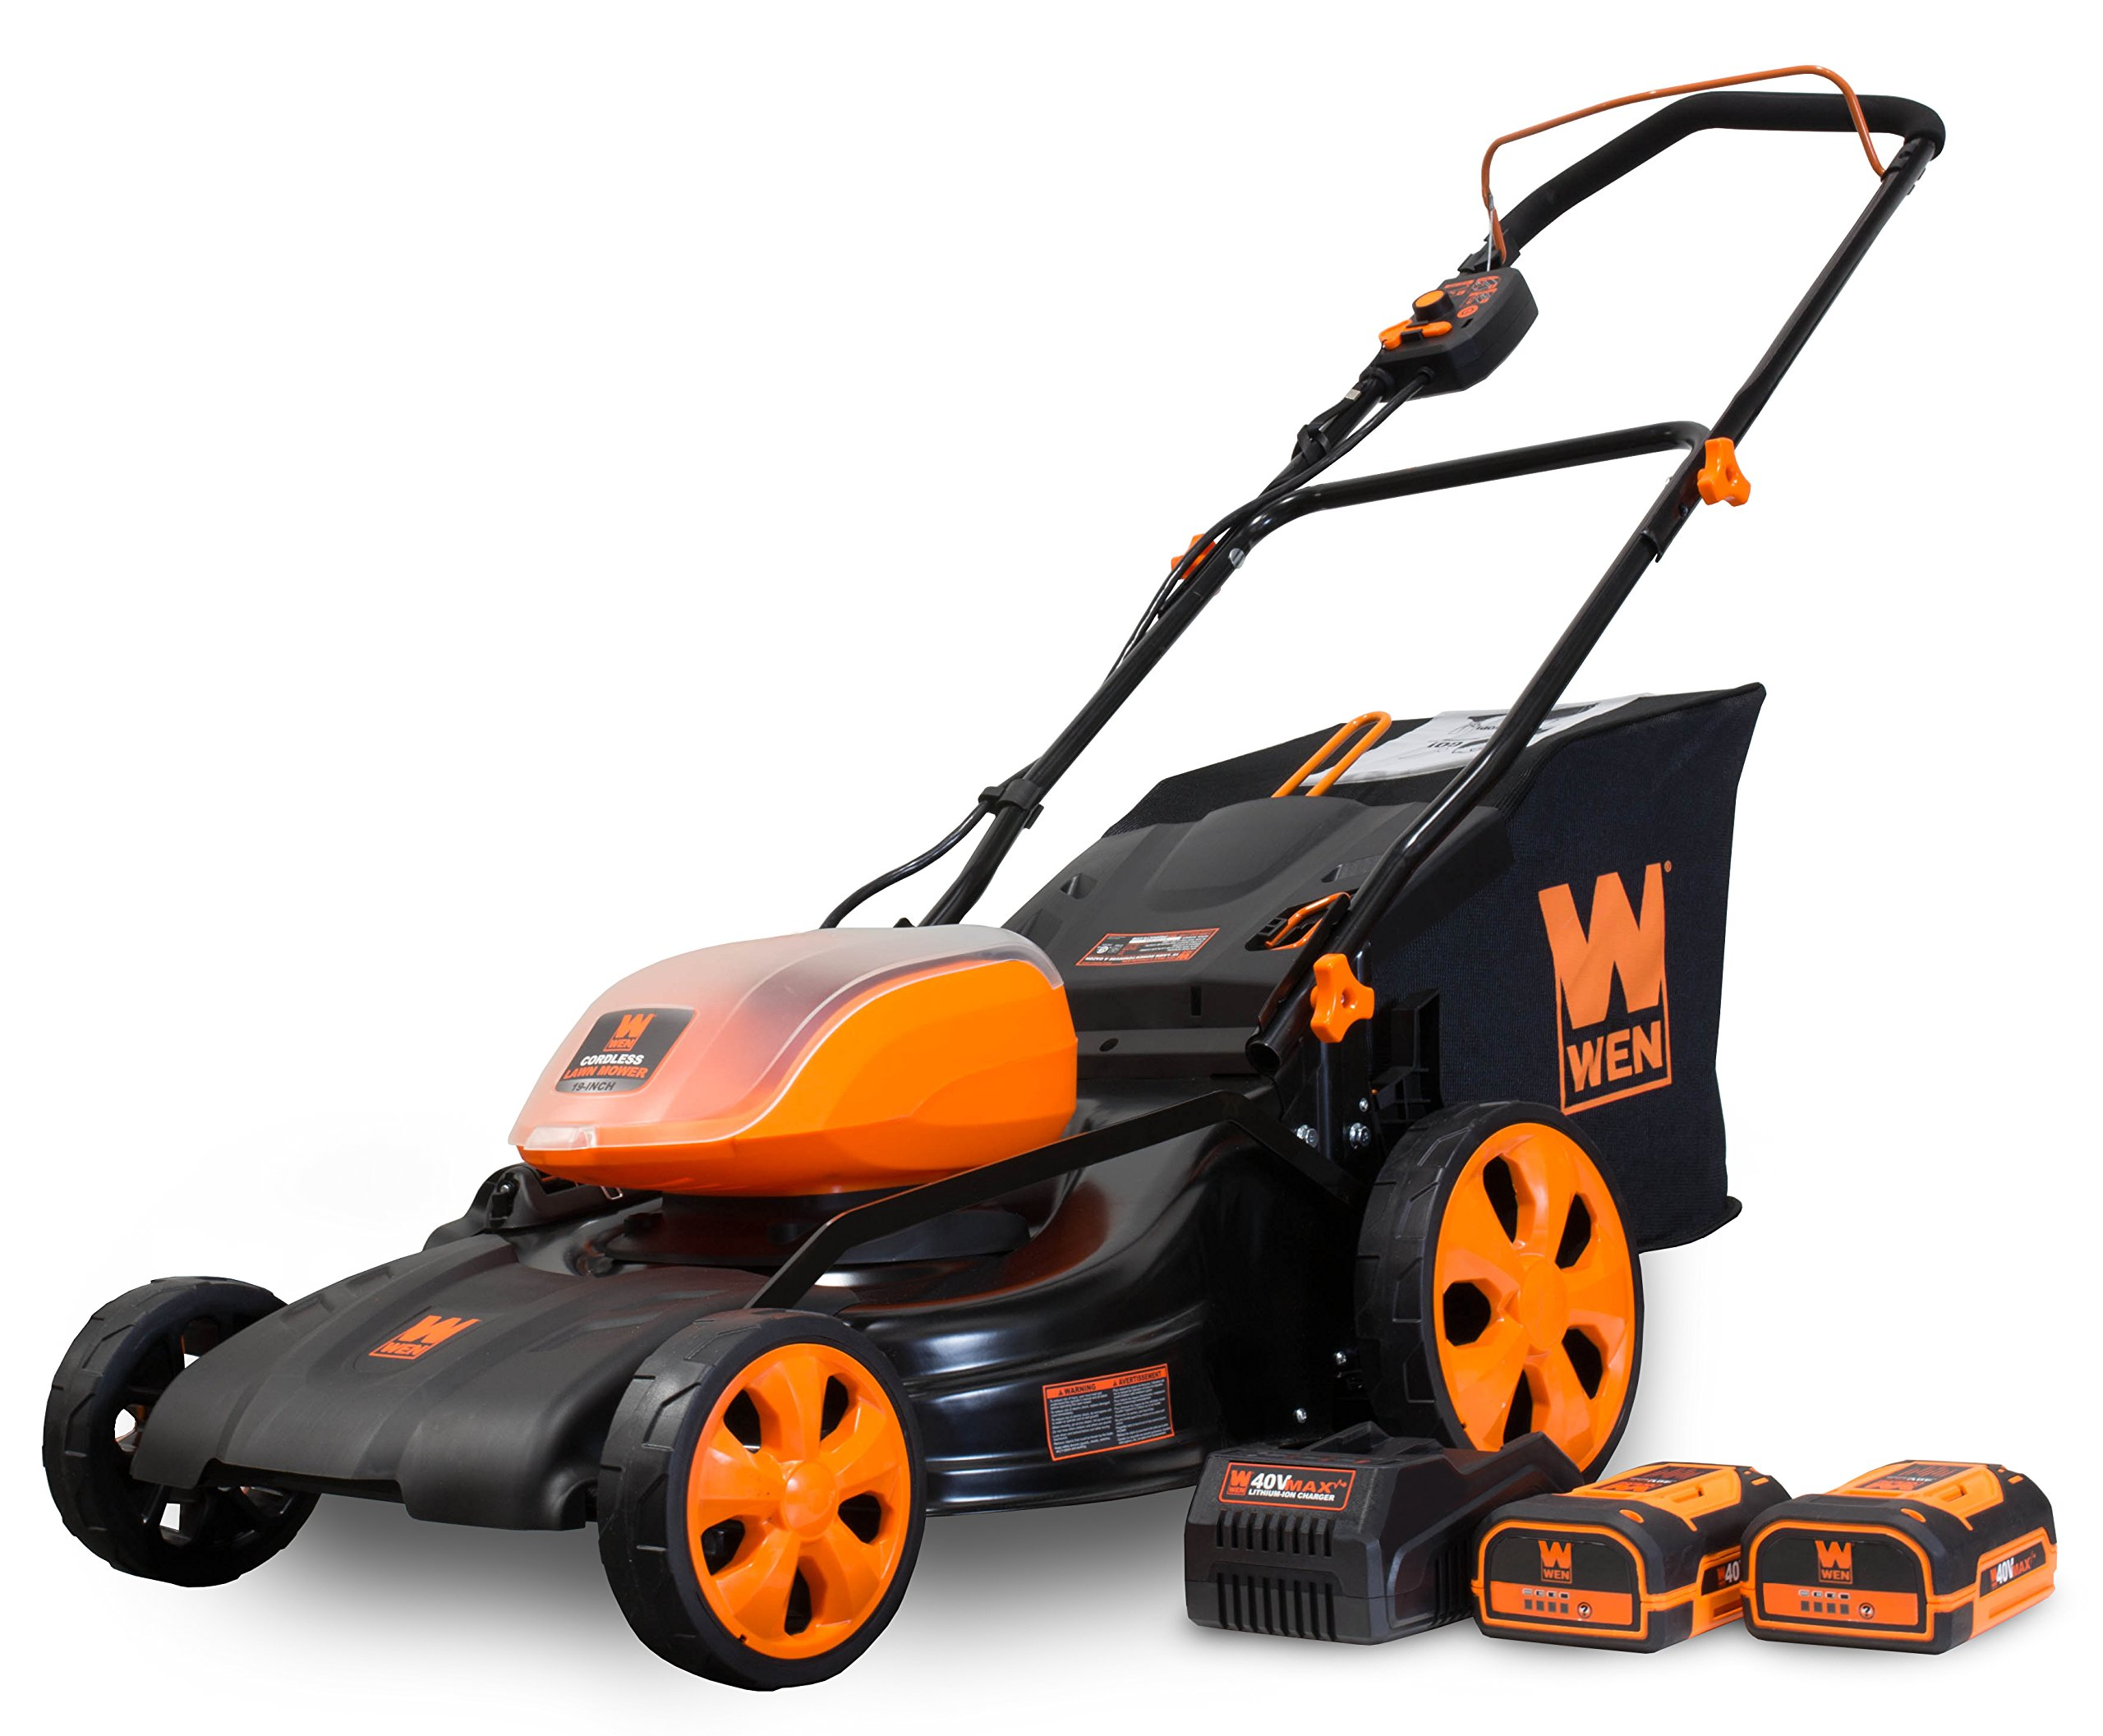 WEN 40439 40V Max Lithium Ion 19-Inch Cordless 3-in-1 Electric Lawn Mower with Two Batteries, 16-Gallon Bag and Charger 1 Includes one 4 amp-hour battery, one 2 amp-hour battery, one 16-gallon bag, one charger, and a two-year warranty Versatile 19-inch steel deck allows users to mulch, bag or use the side discharge door Adjust the cutting height between six different stops ranging from 1.5 to 4 inches